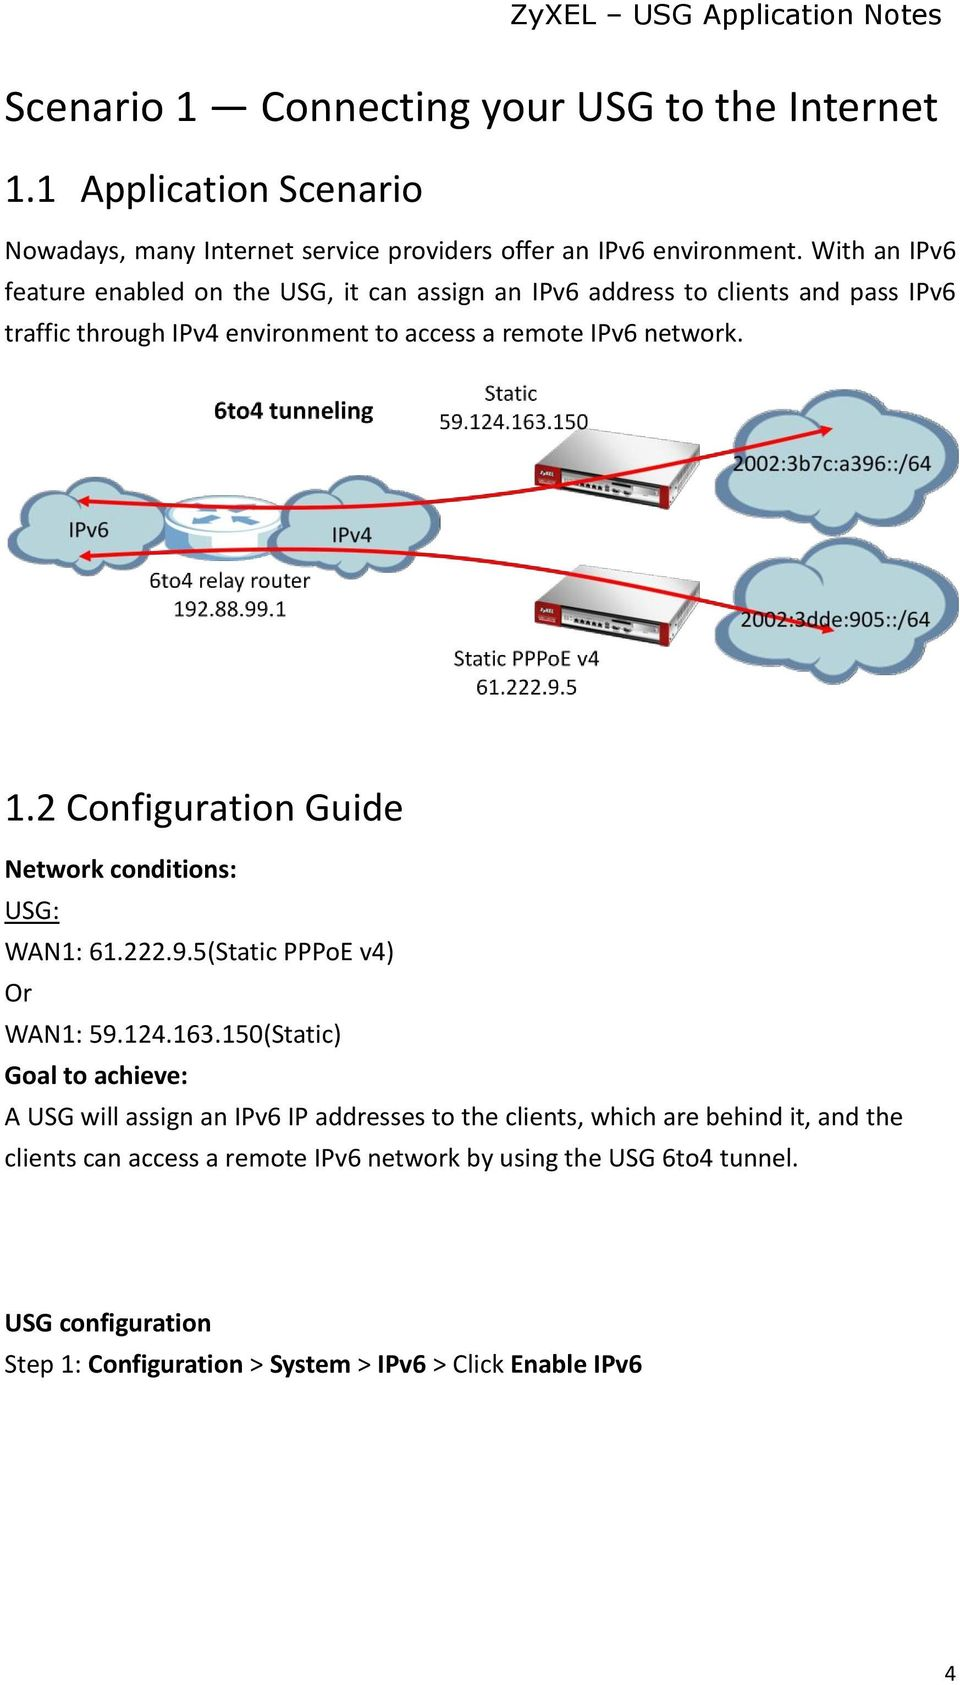 2 Configuration Guide Network conditions: USG: WAN1: 61.222.9.5(Static PPPoE v4) Or WAN1: 59.124.163.